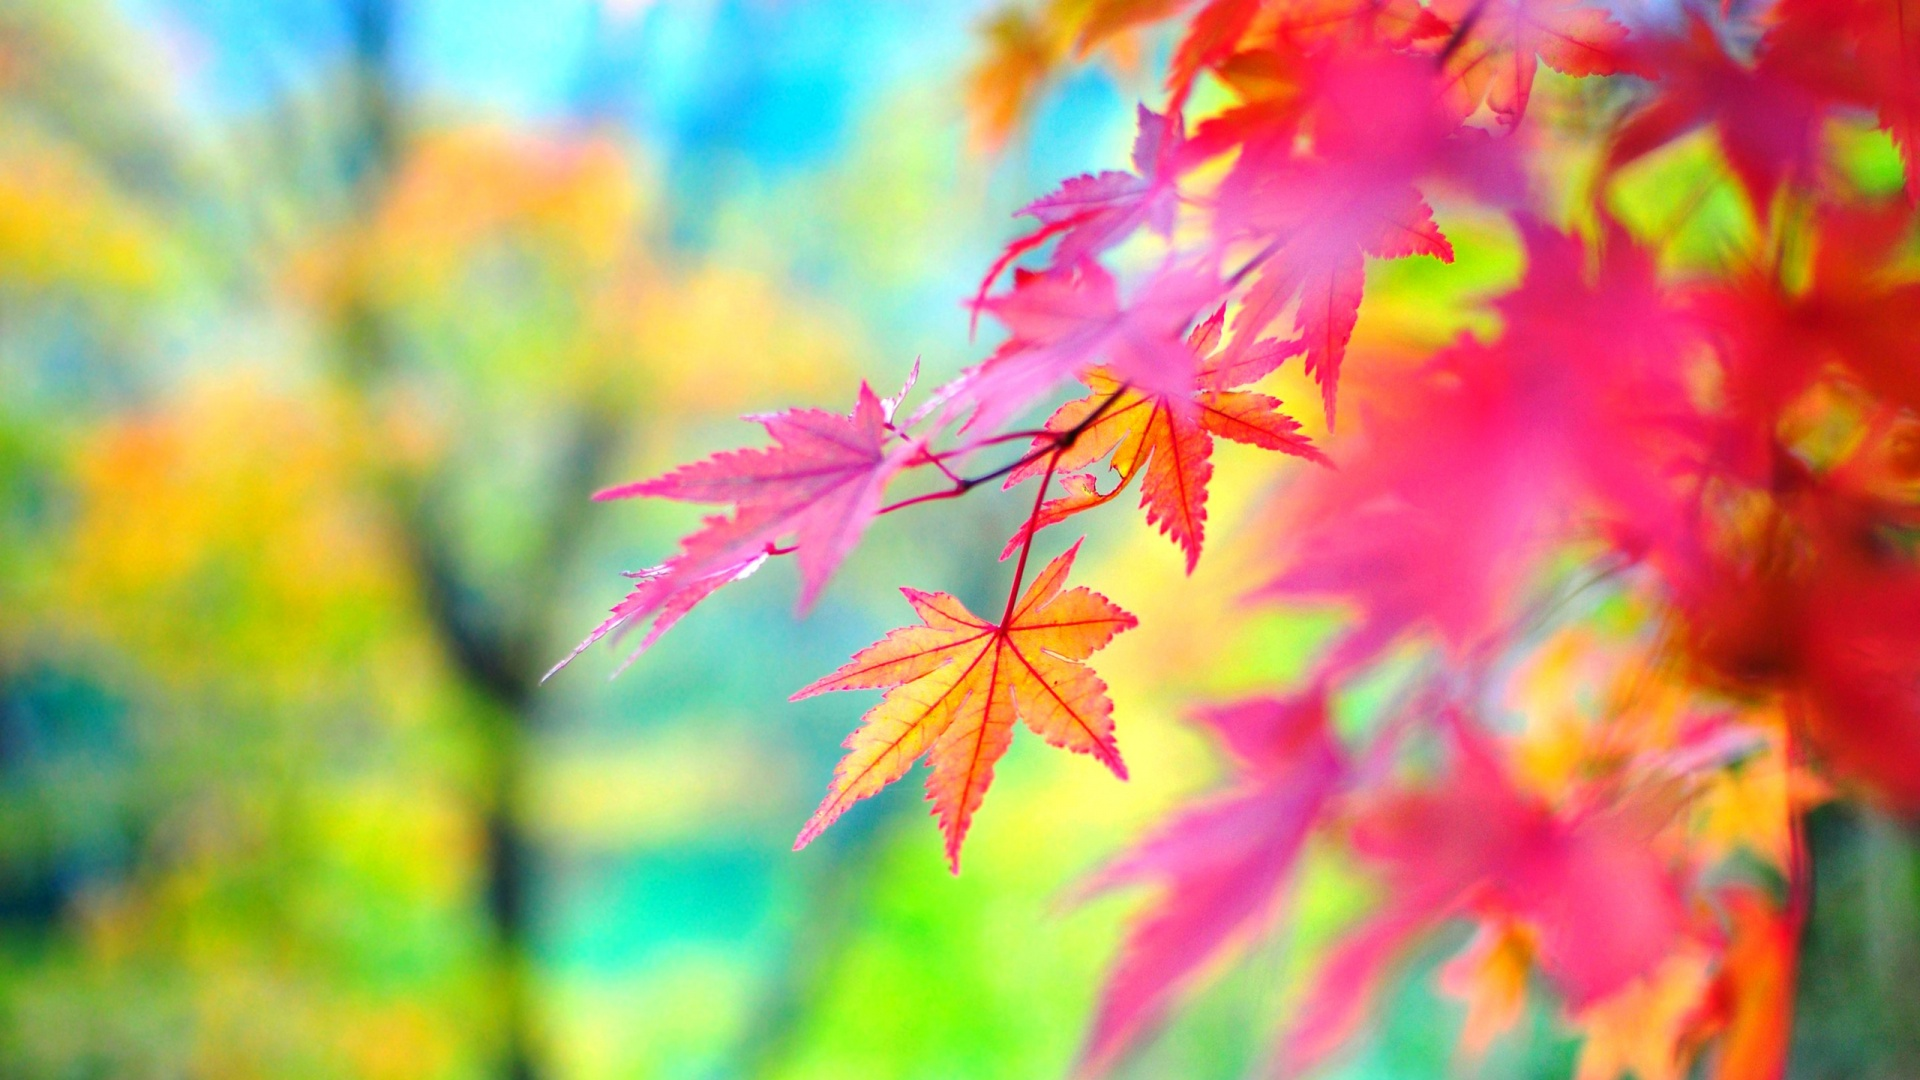 Colorful Nature Wallpaper